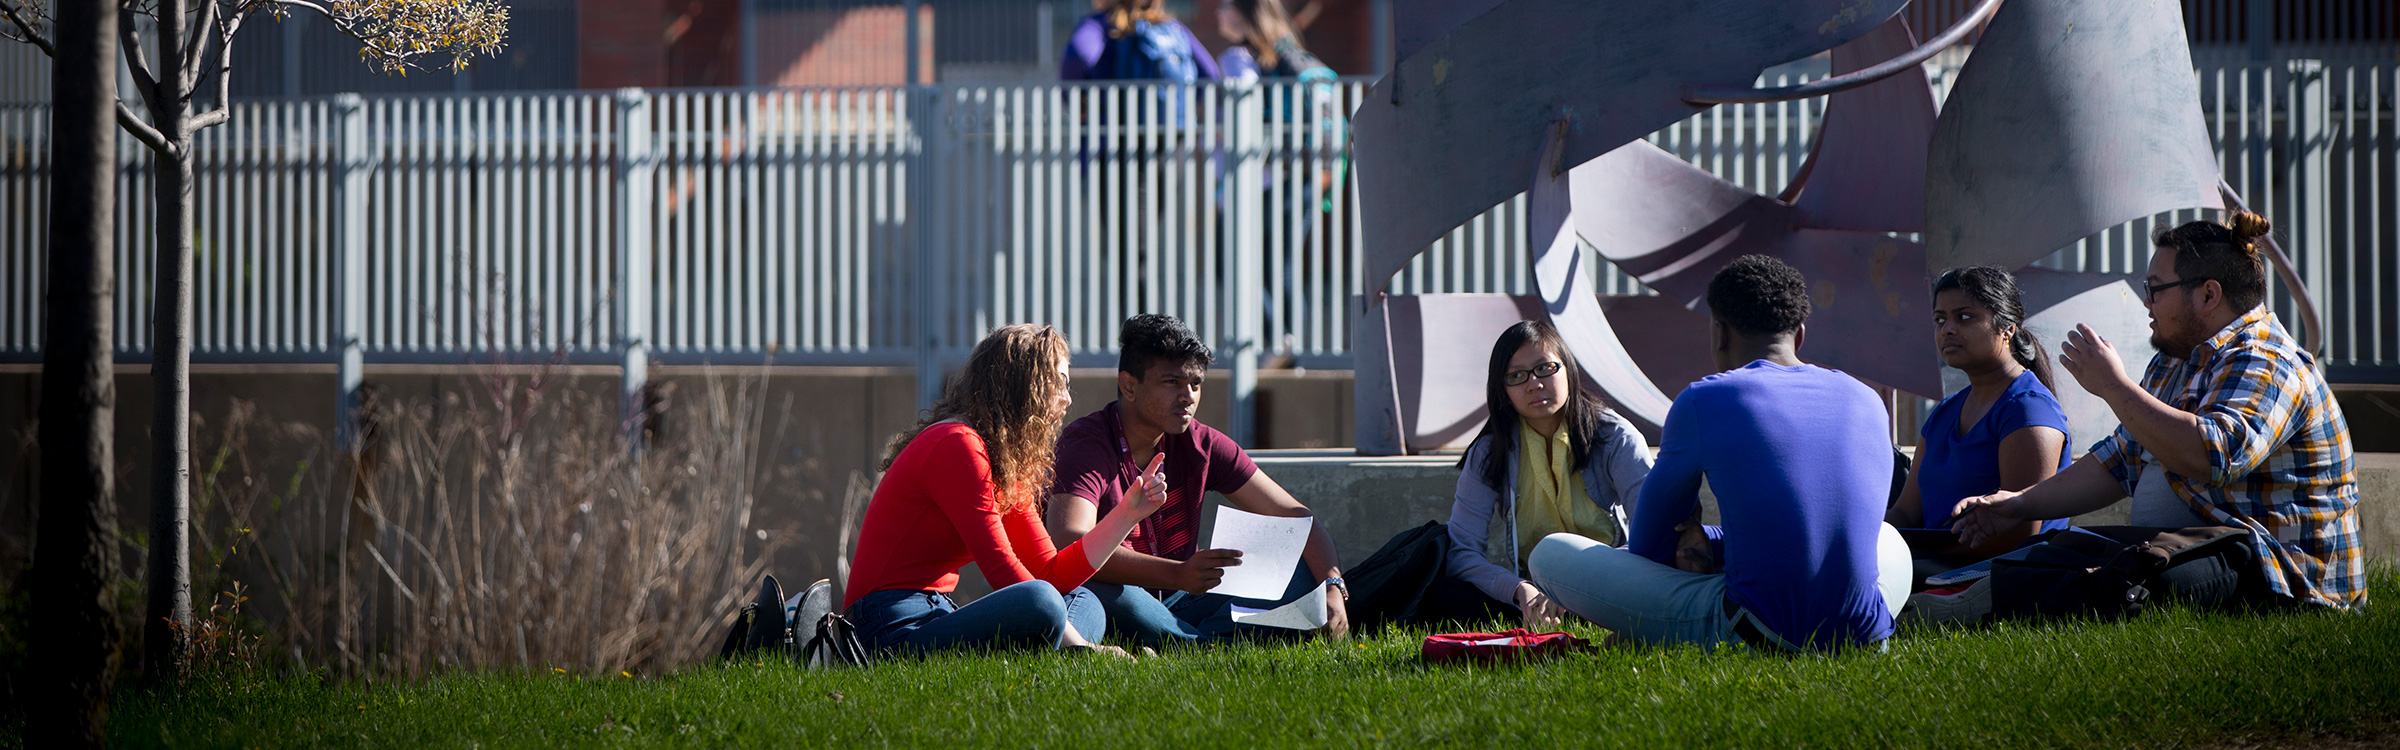 Students sitting outside on campus grounds